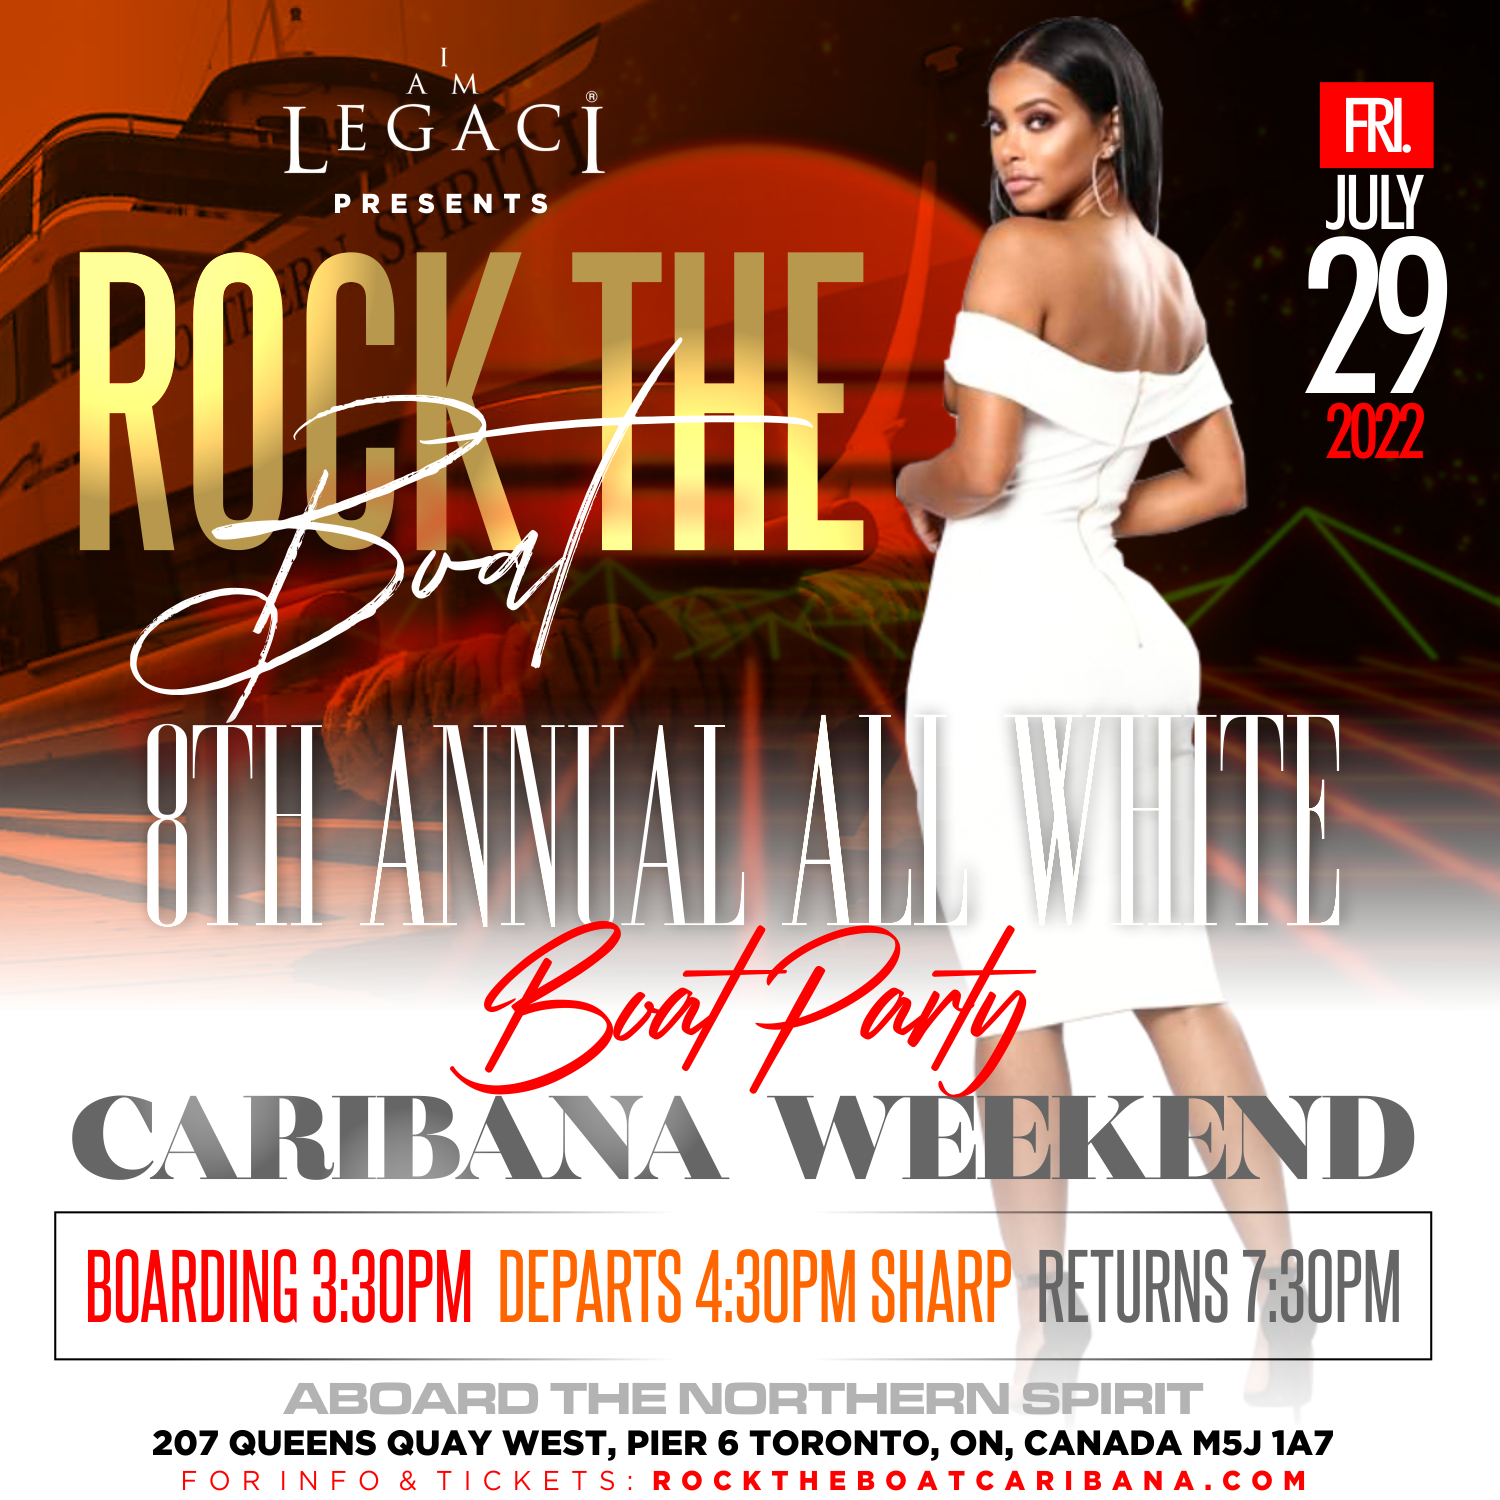 ROCK THE BOAT • 8th ANNUAL ALL WHITE BOAT PARTY • TORONTO CARIBANA 2022